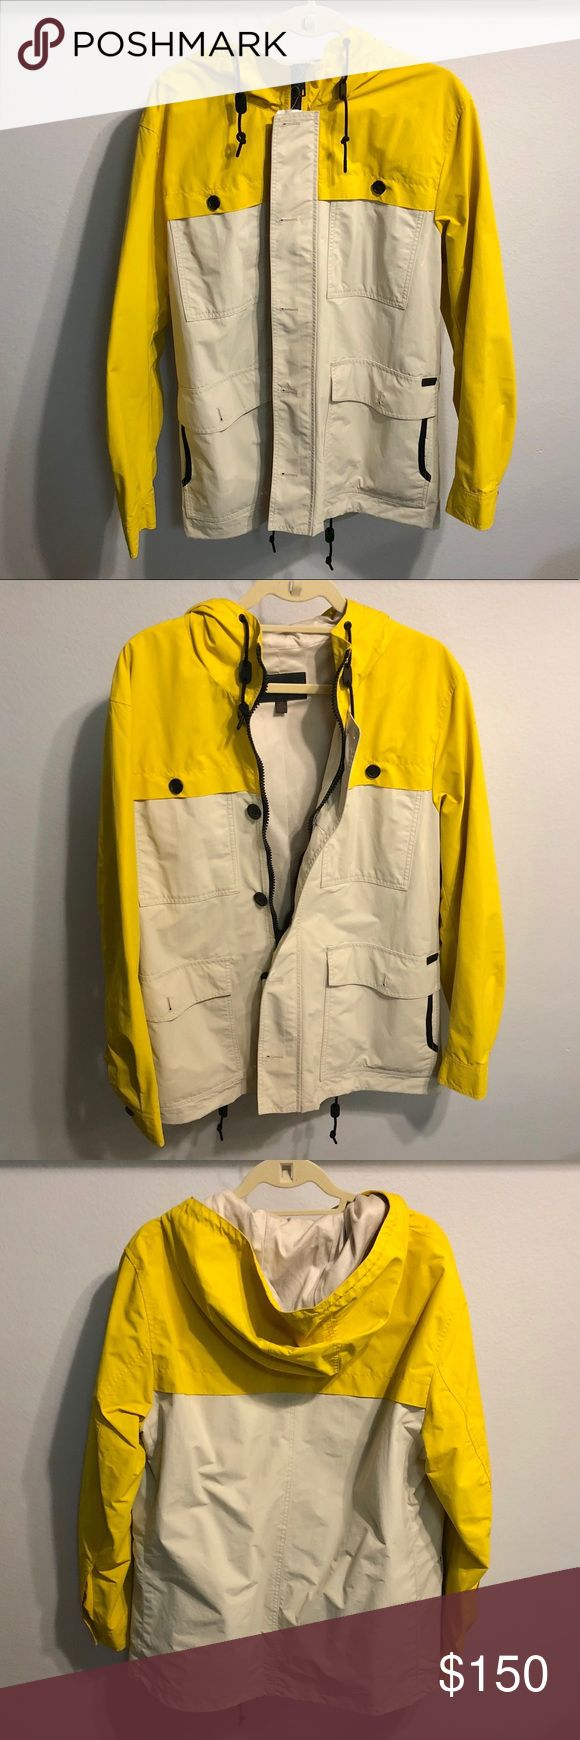 Coach Men's Sailing Jacket *SUPER RARE* Coach Men's Sailing Jacket in Yellow/Khaki. This style has been discontinued so it's no longer available in stores. NWT; NEVER WORN. Original retail $595. Any questions feel free to ask! Coach Jackets & Coats Utility Jackets